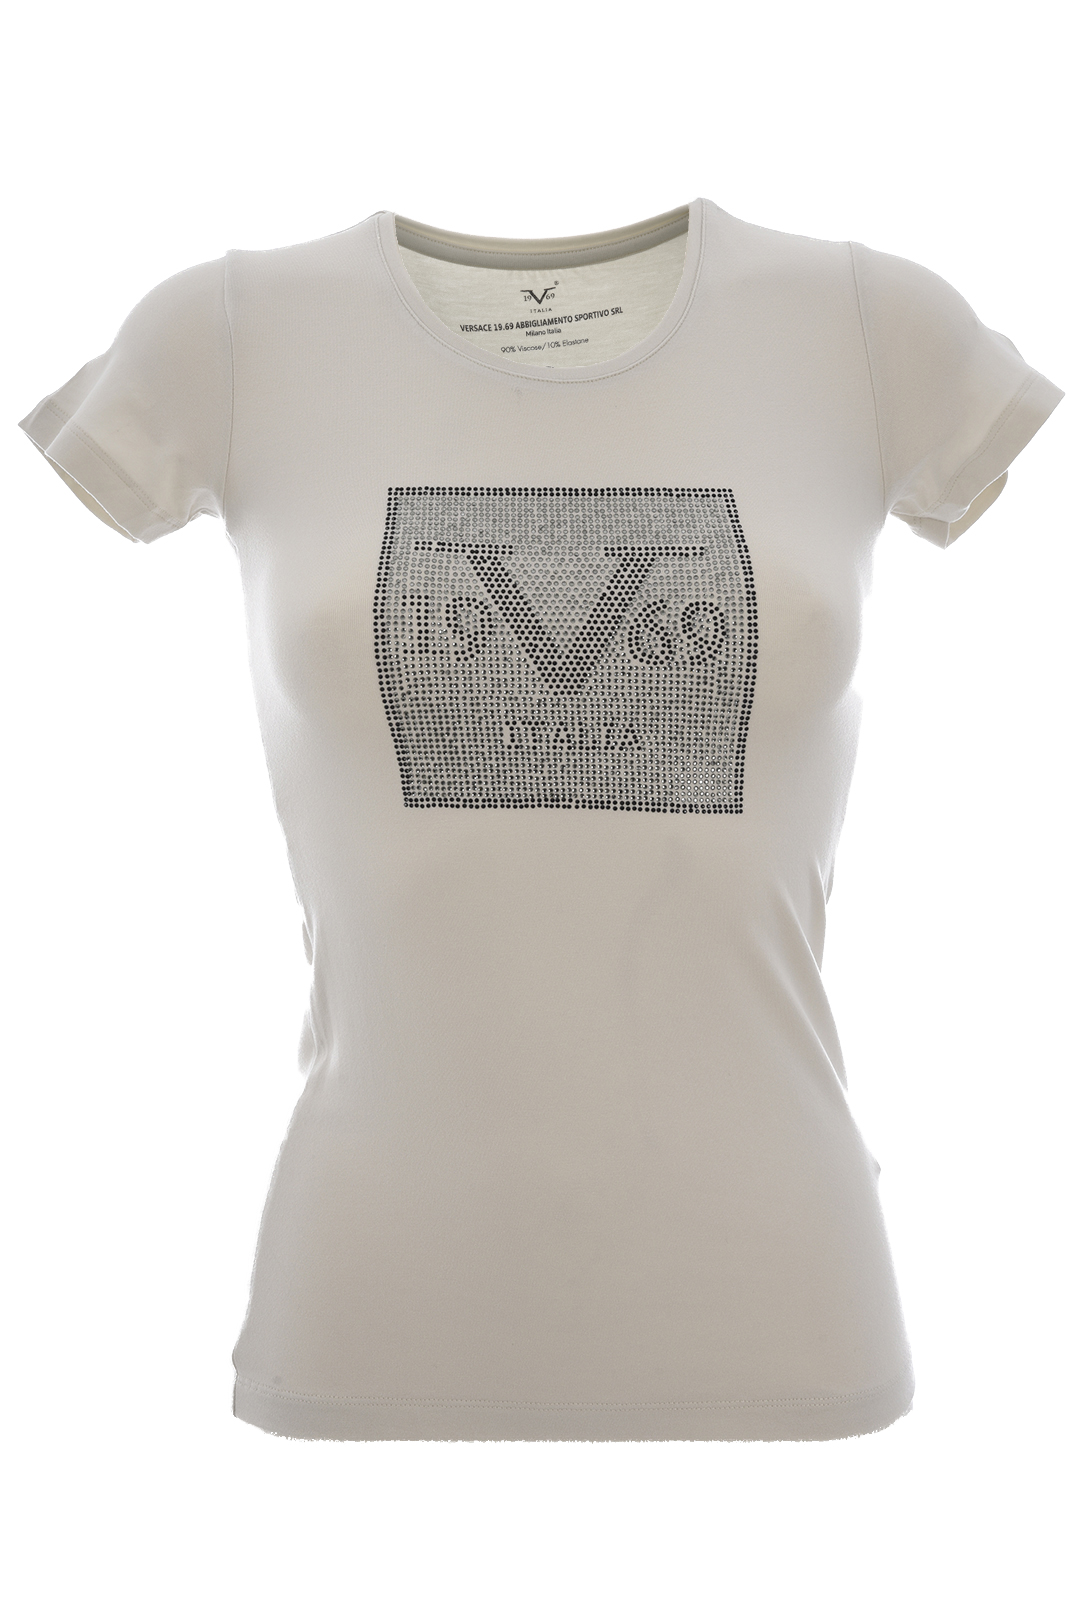 Tee shirt  19V69 by Versace 1969 CUBO LIGHT GRAY